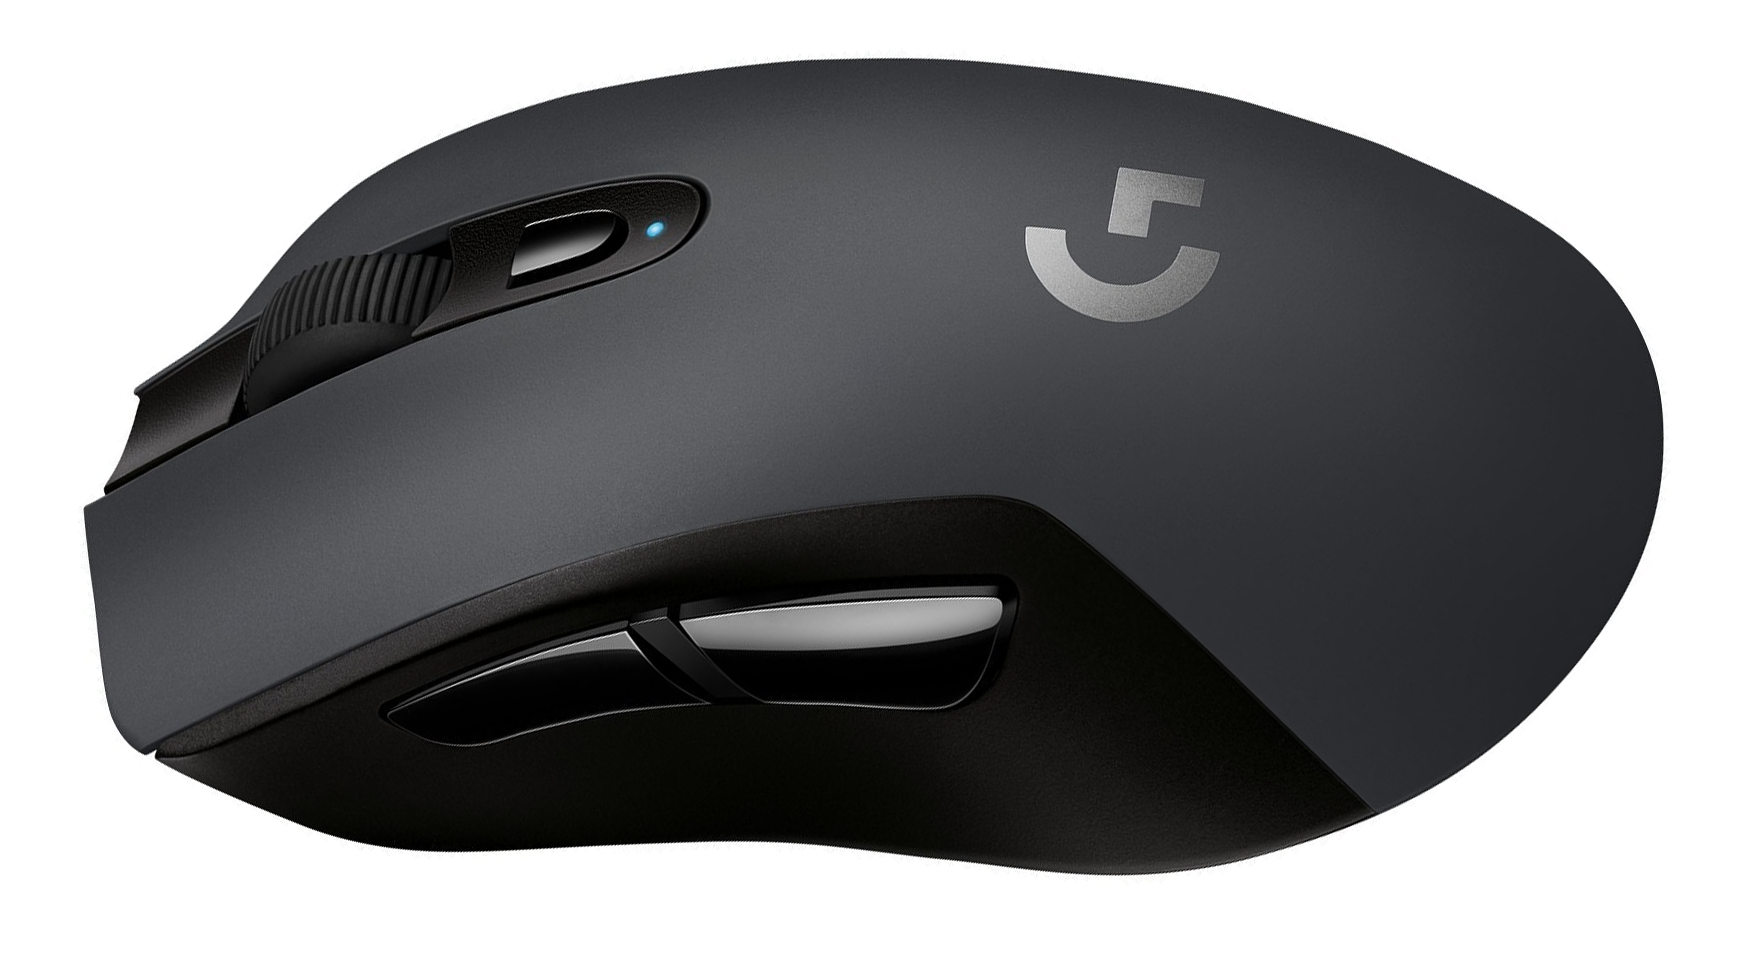 logitech, wireless, bluetooth, g603, gaming mouse, gaming, wireless,